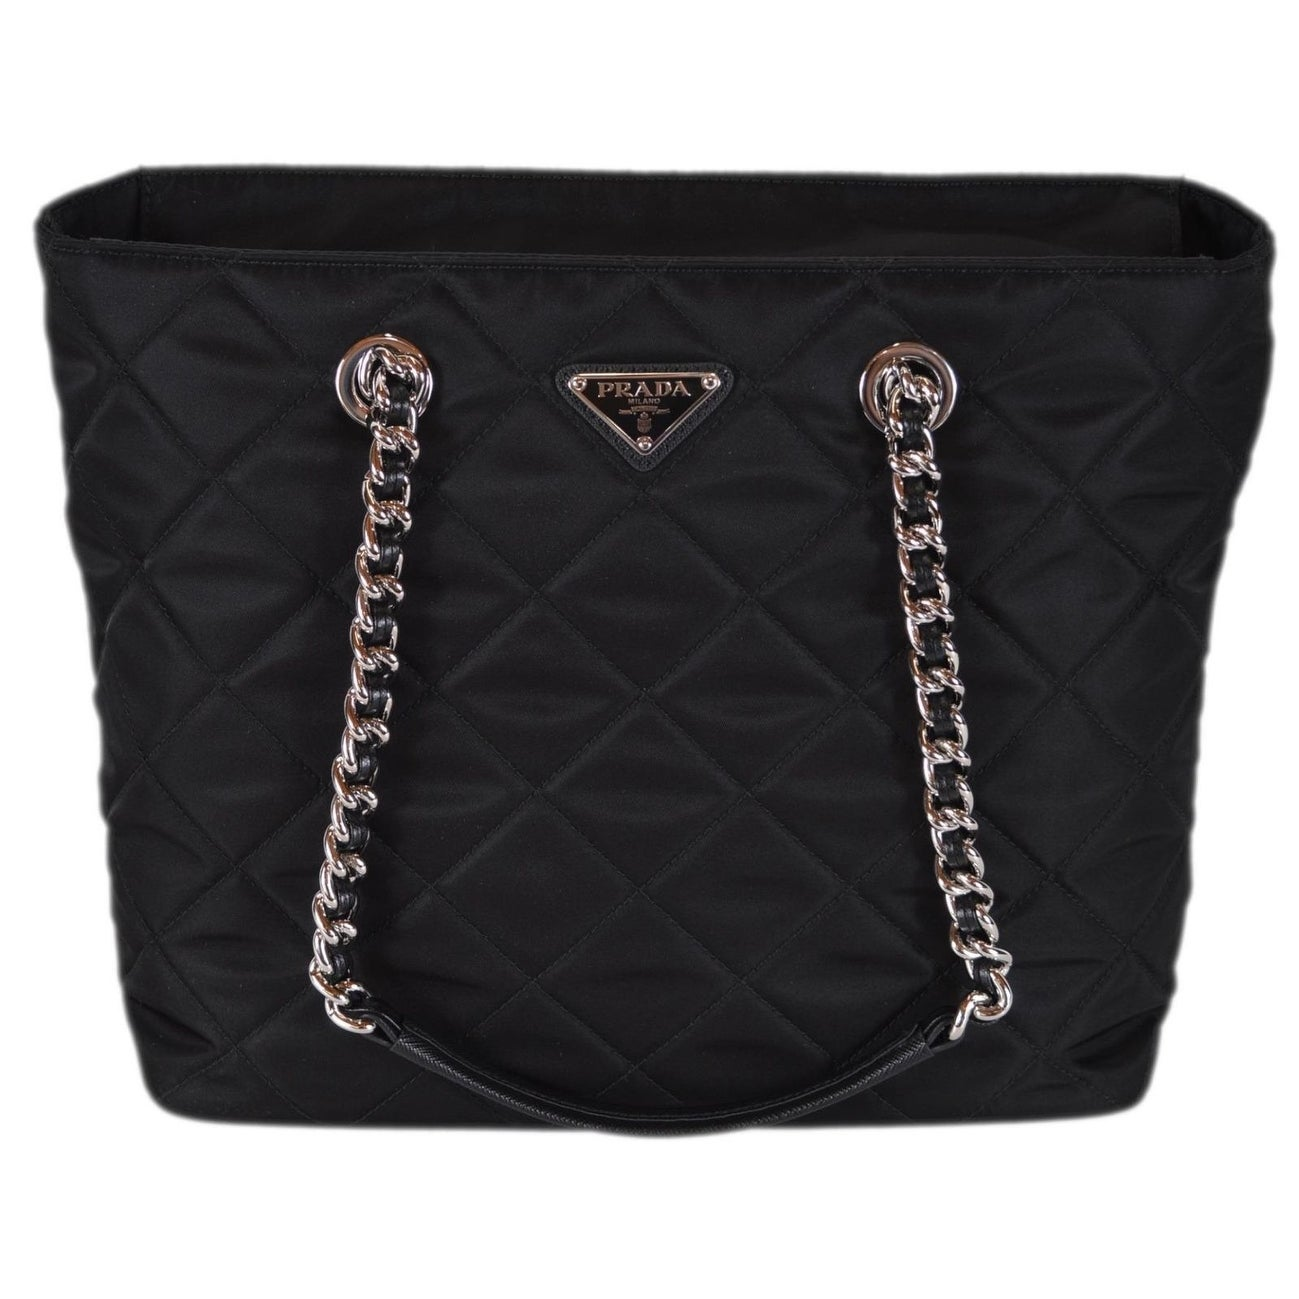 35c83829e808 Shop Prada Black 1BG017 Black Tessuto Quilted Nylon Chain Strap Purse Tote  - Free Shipping Today - Overstock - 24267281